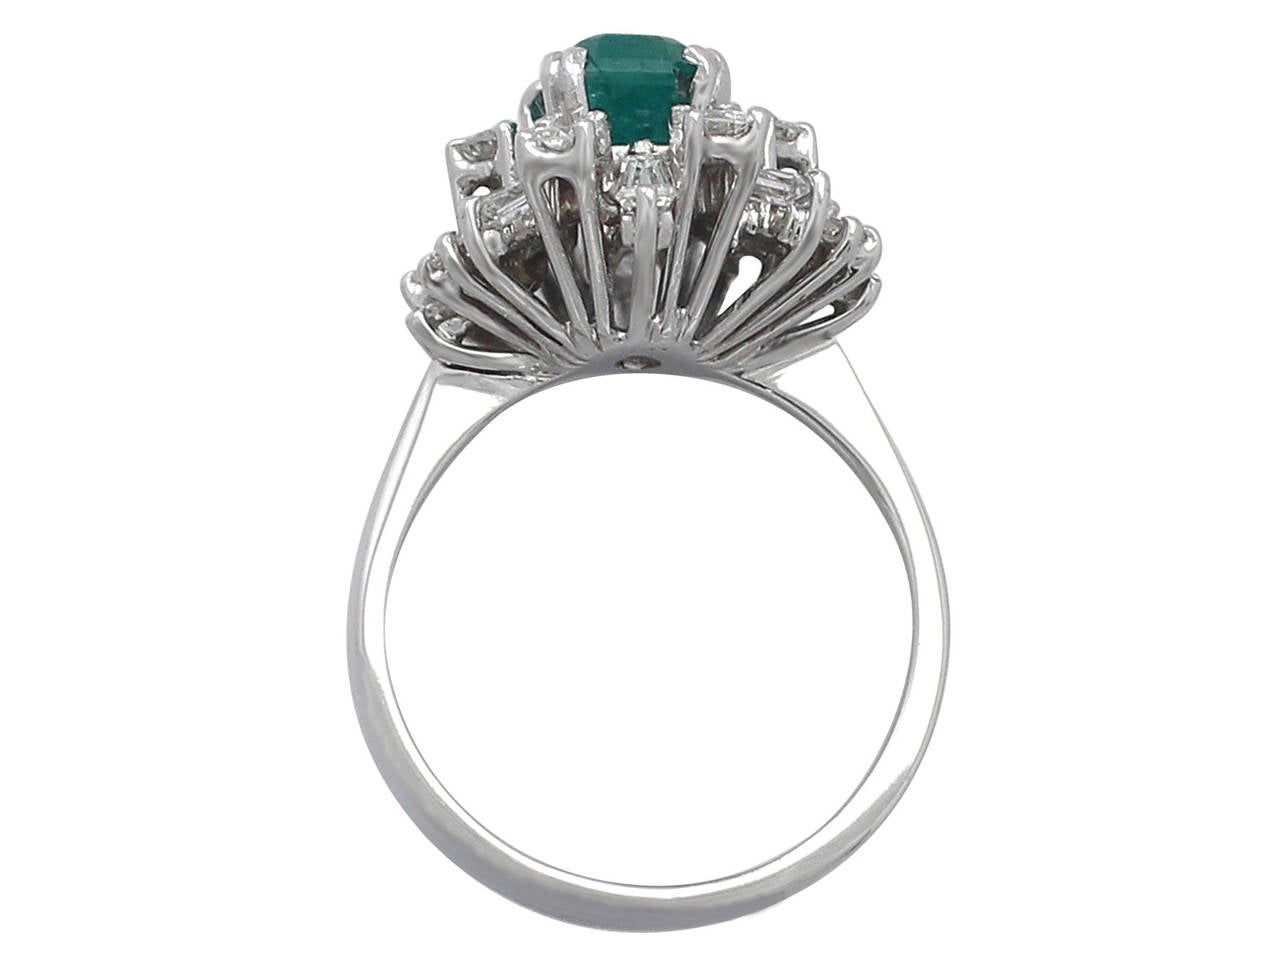 1 48ct emerald and 1 08ct 18k white gold cluster